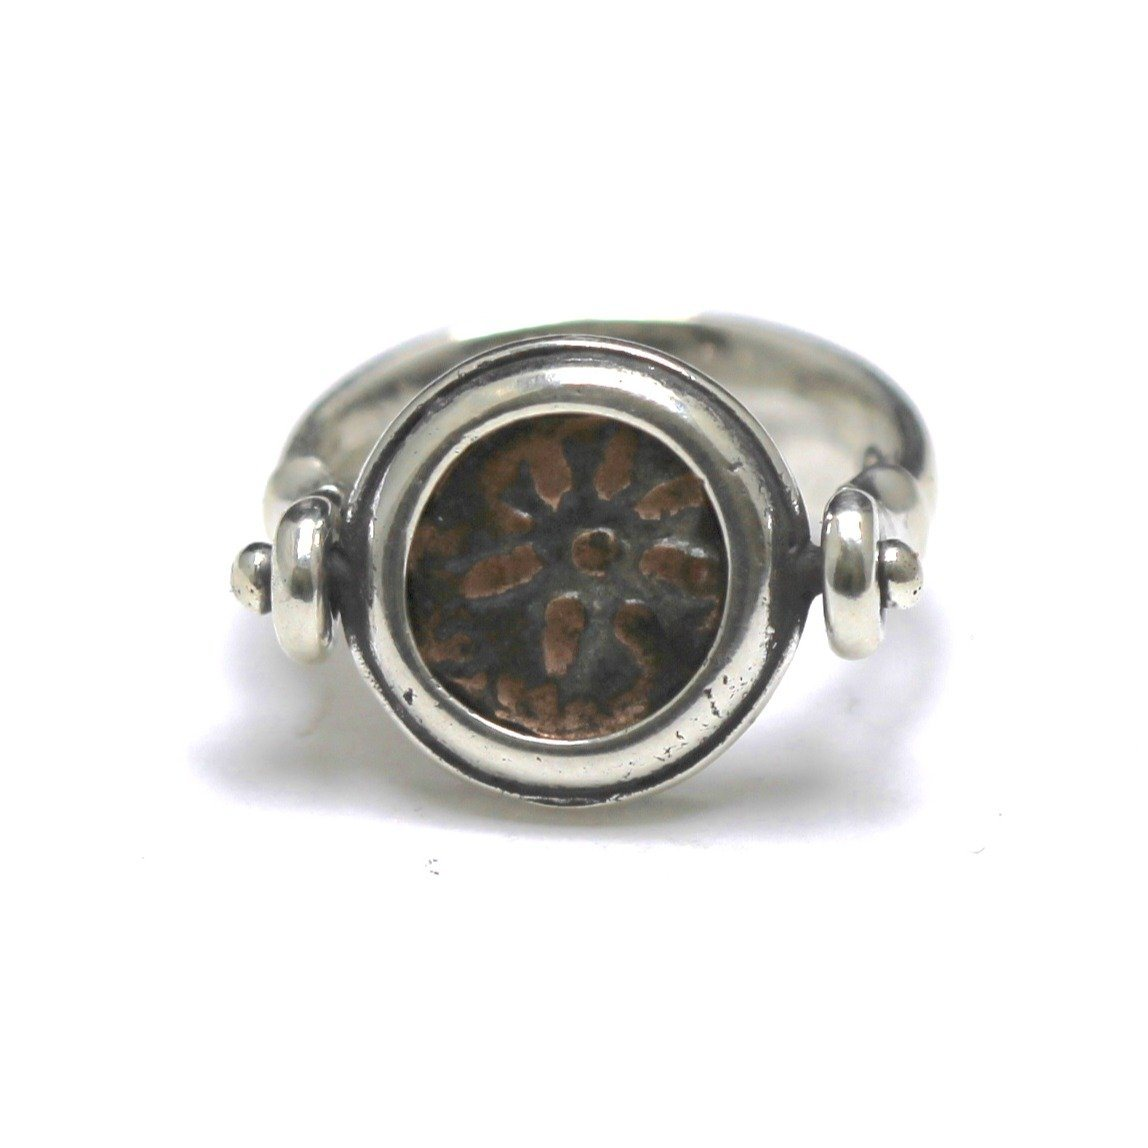 Widows Mite Flip Ring, Star Up, Sterling Silver, Genuine Ancient Coin, with Certificate  R83 - Erez Ancient Coin Jewelry, ancient coin jewelry, men jewelry, genuine ancient coins, made in the US